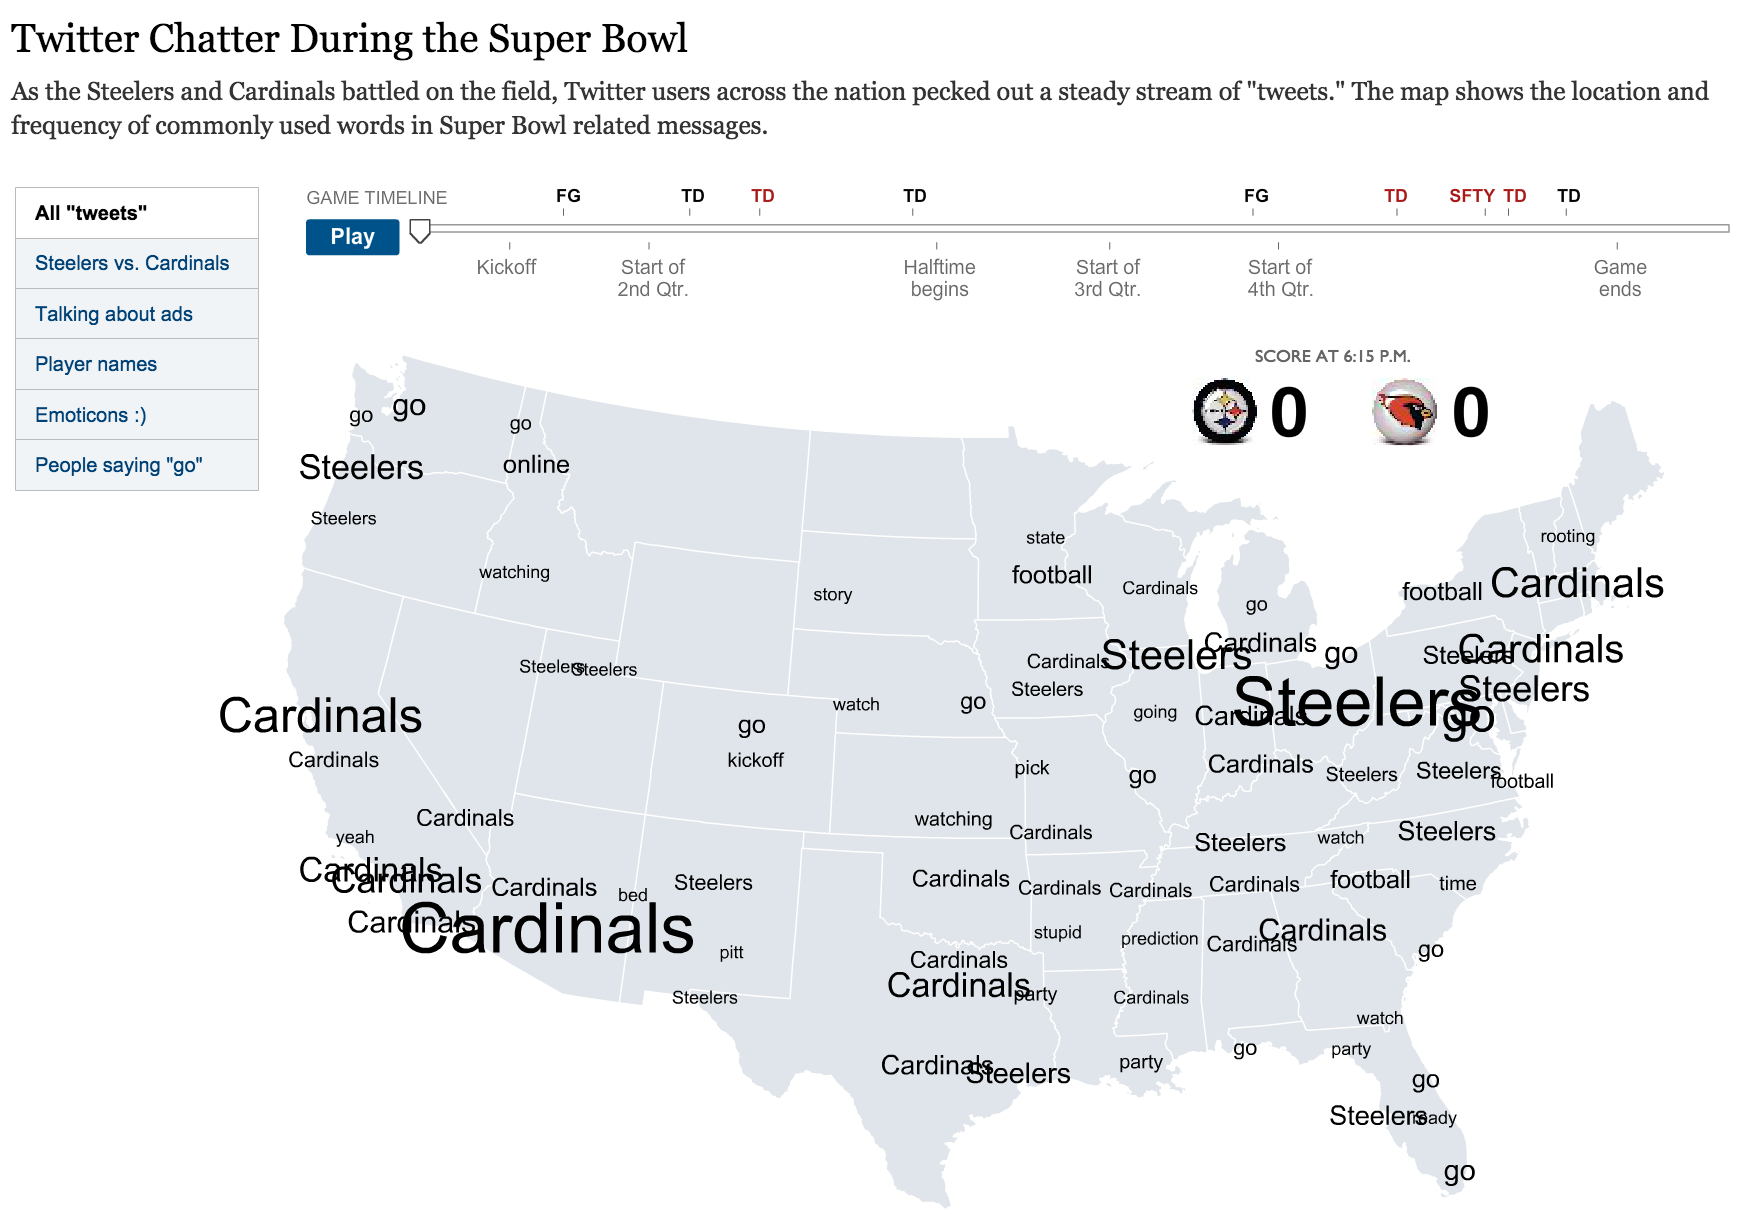 NYTimes Superbowl visualization